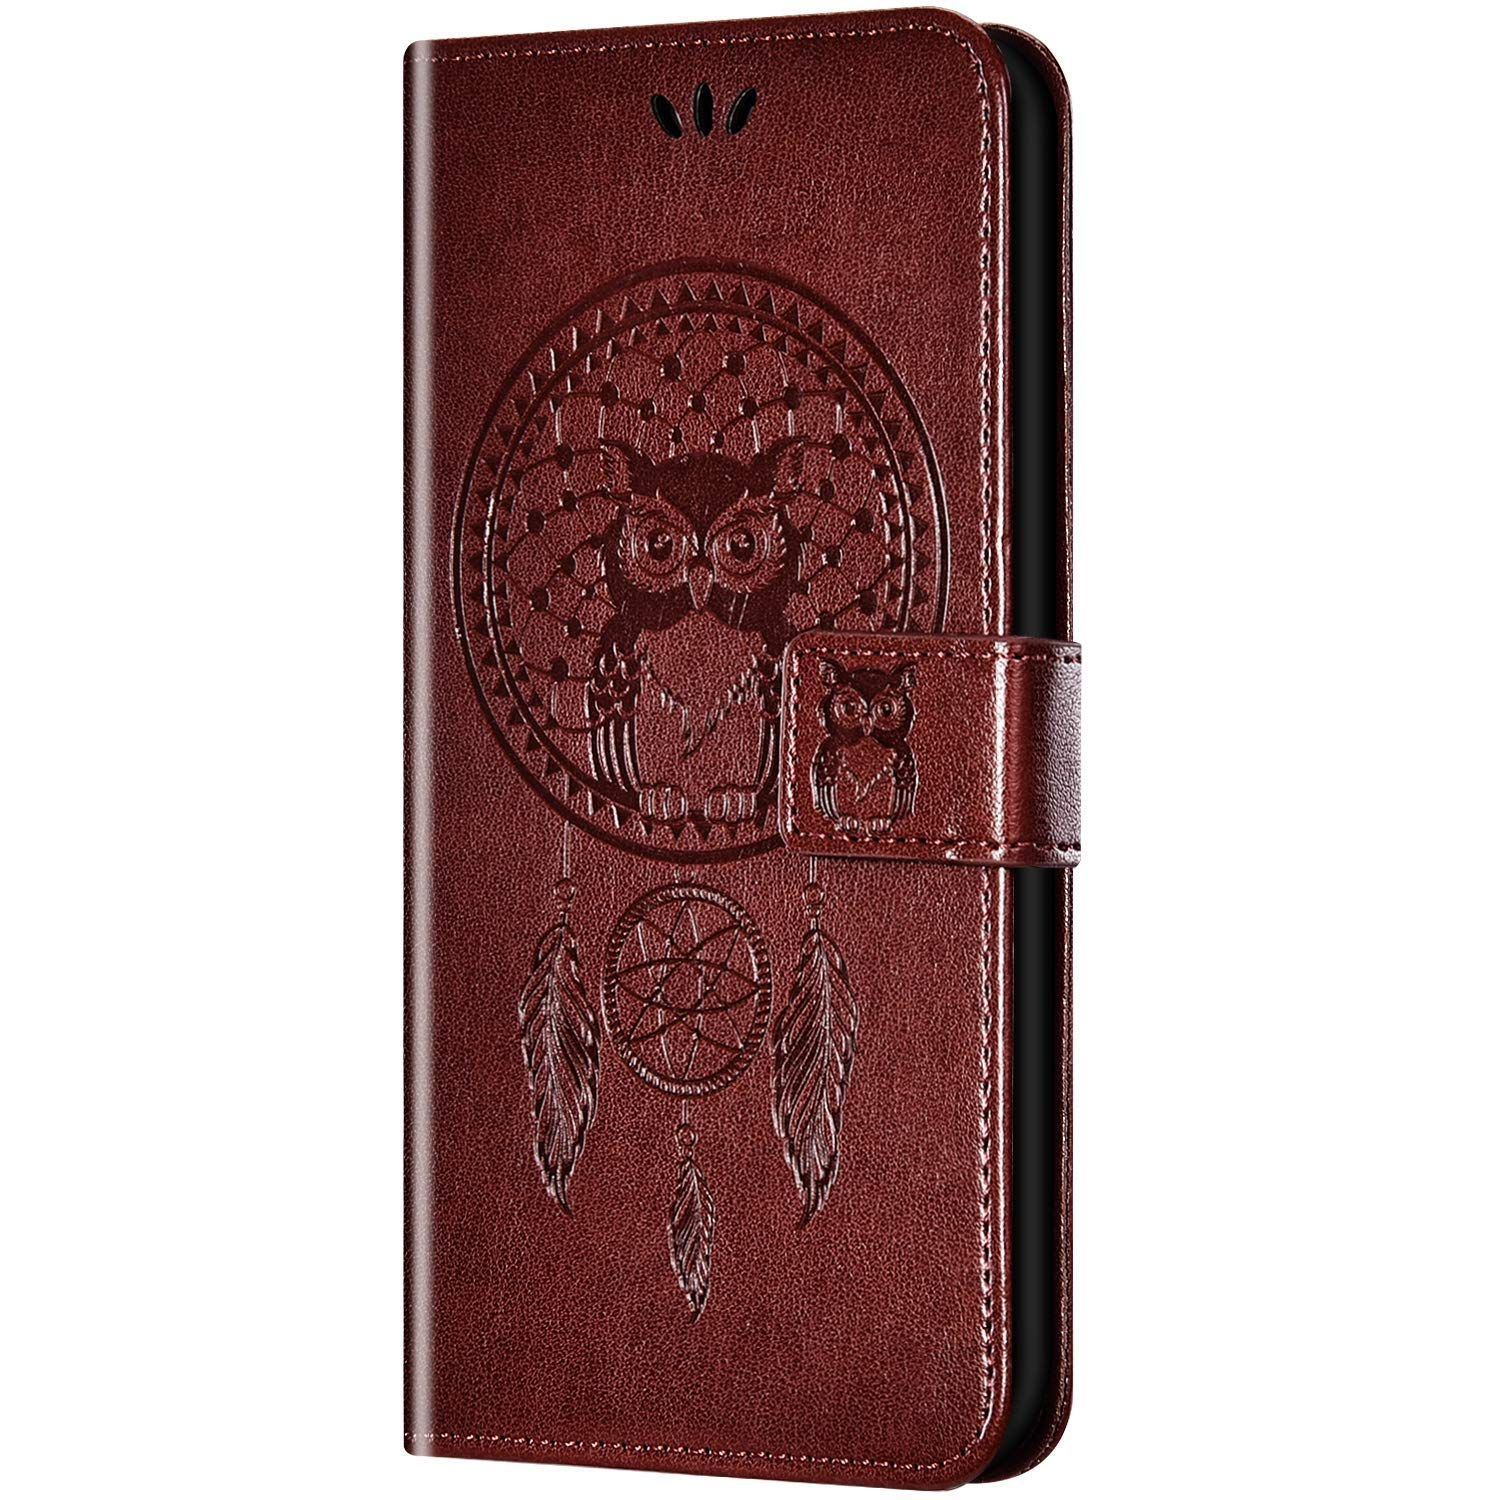 Case for Huawei Honor 8 Flip Case Ultra Slim PU Leather Wallet with Card Holder/Slot and Magnetic Closure Shockproof Cartoon Animal Owl Embossed Protective Cover for Huawei Honor 8,Brown by ikasus